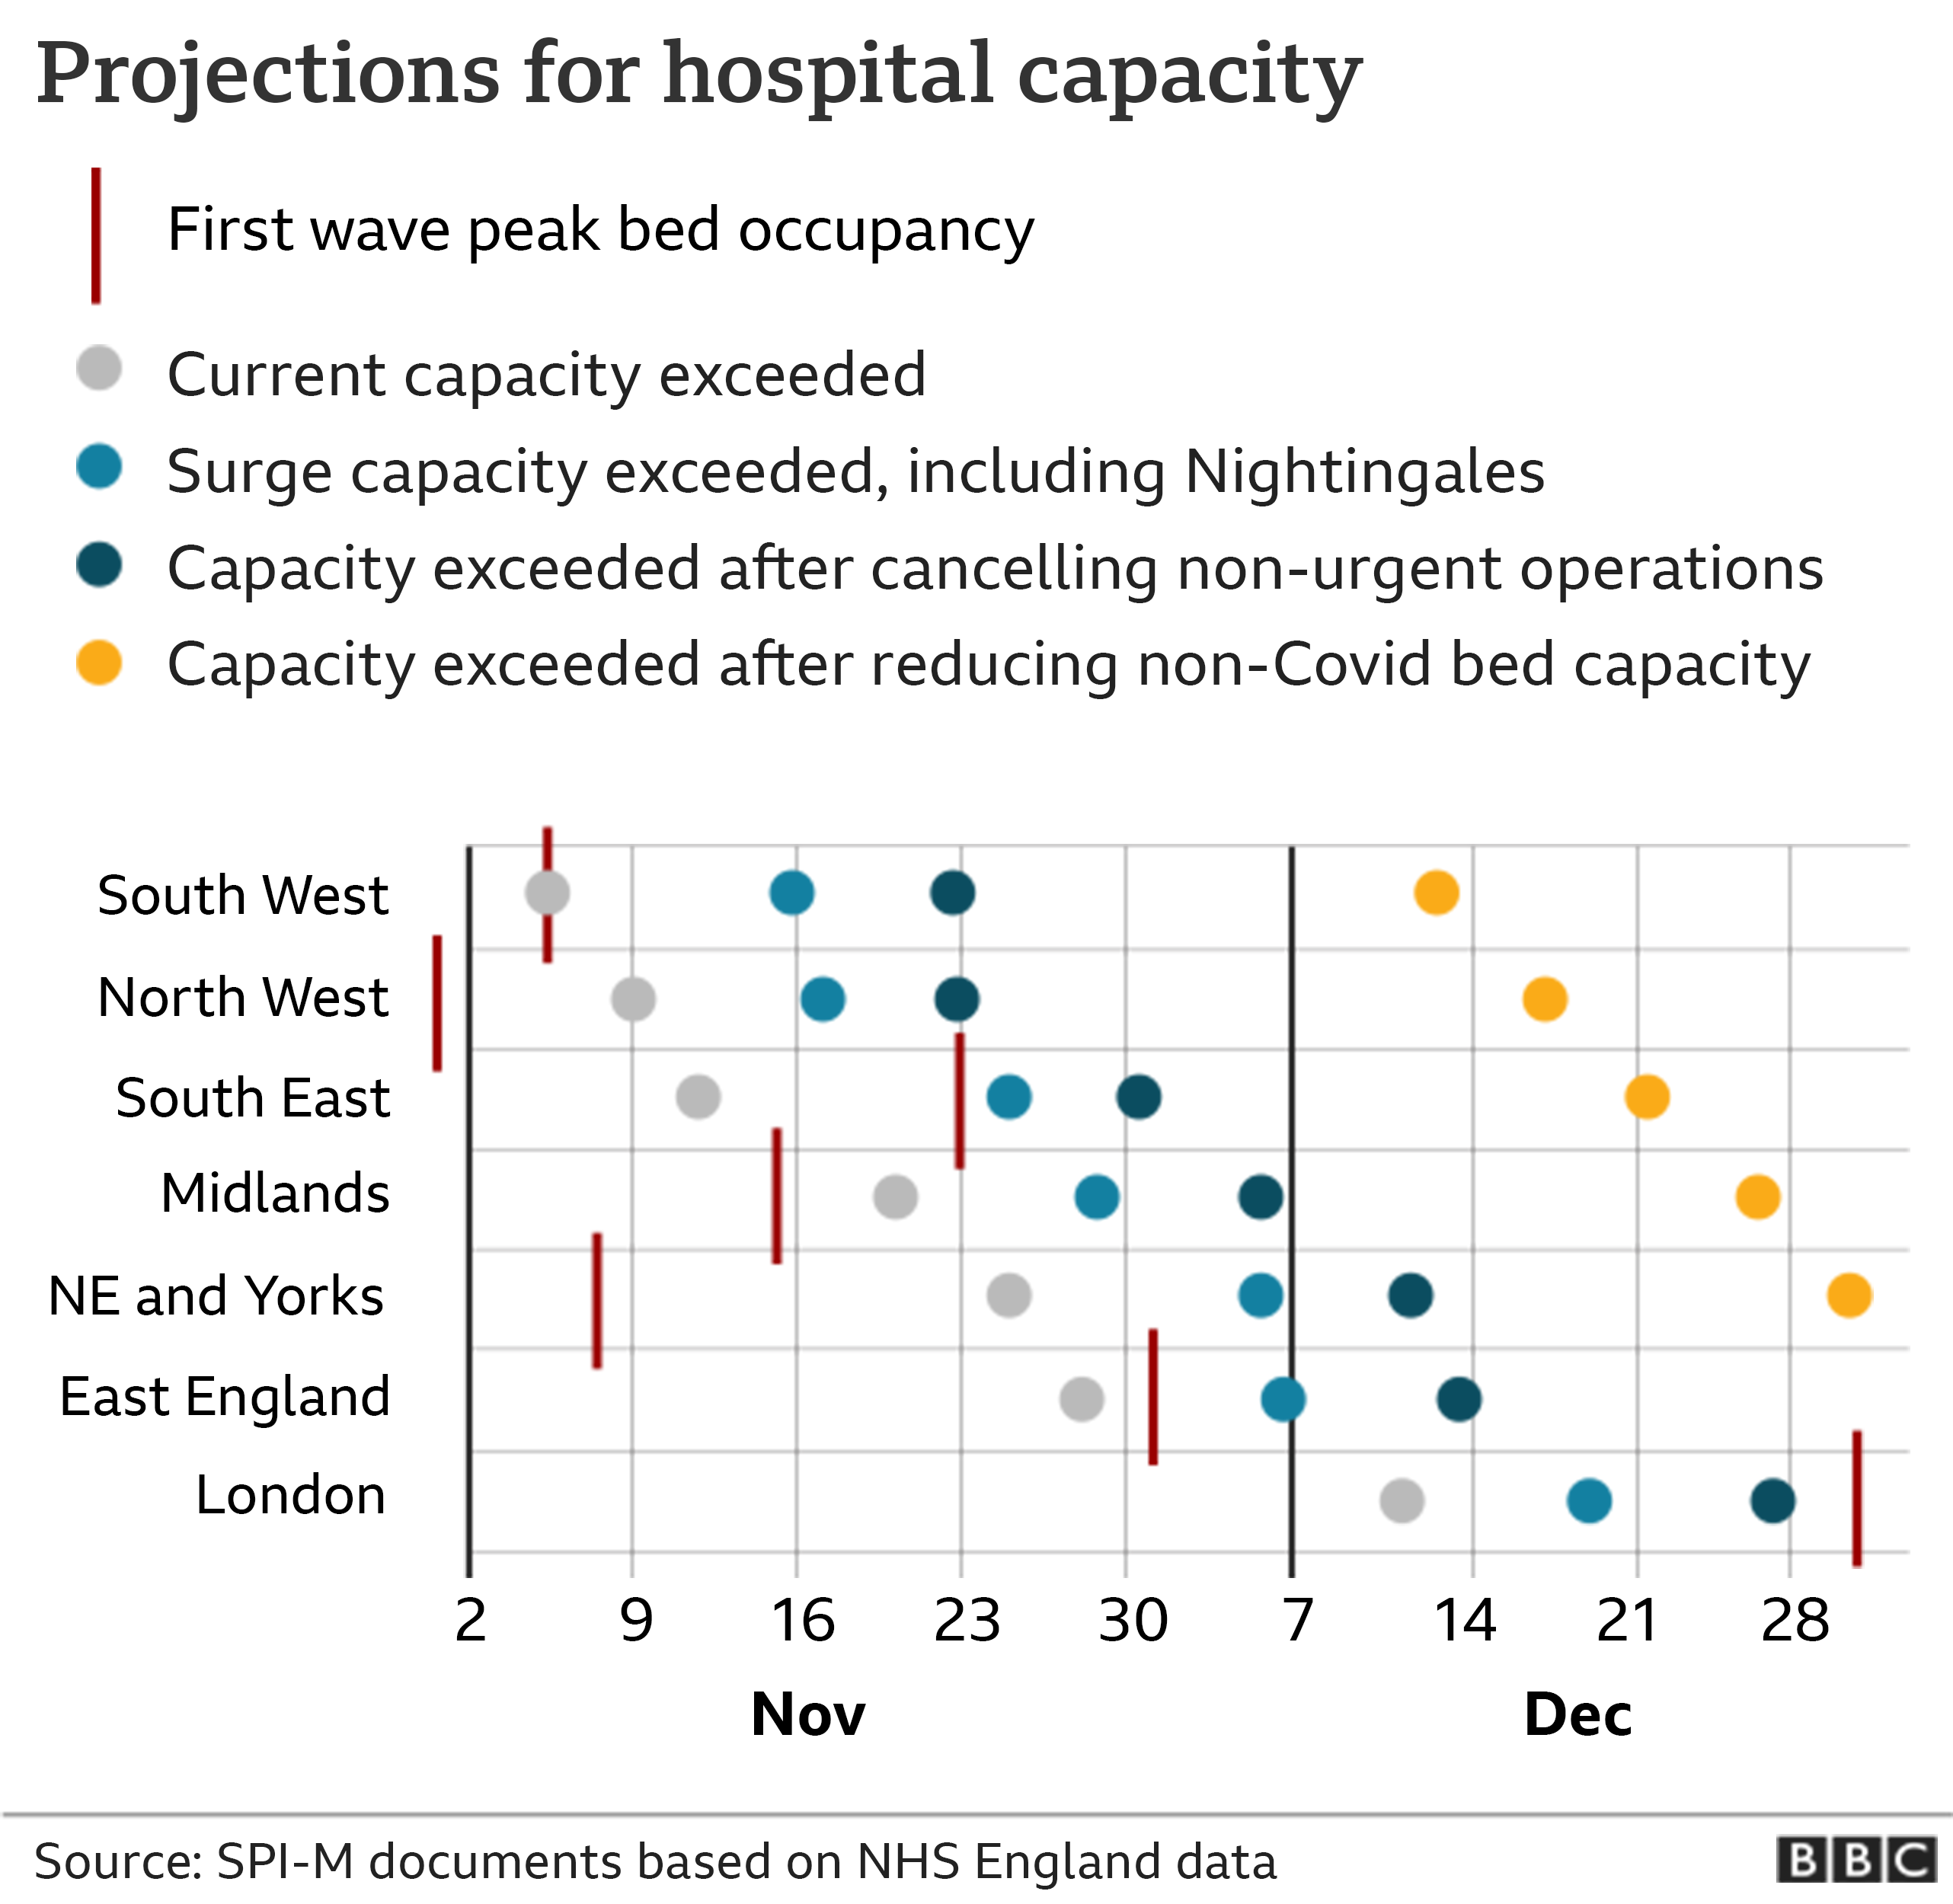 Graphic showing projections for hospital capacity